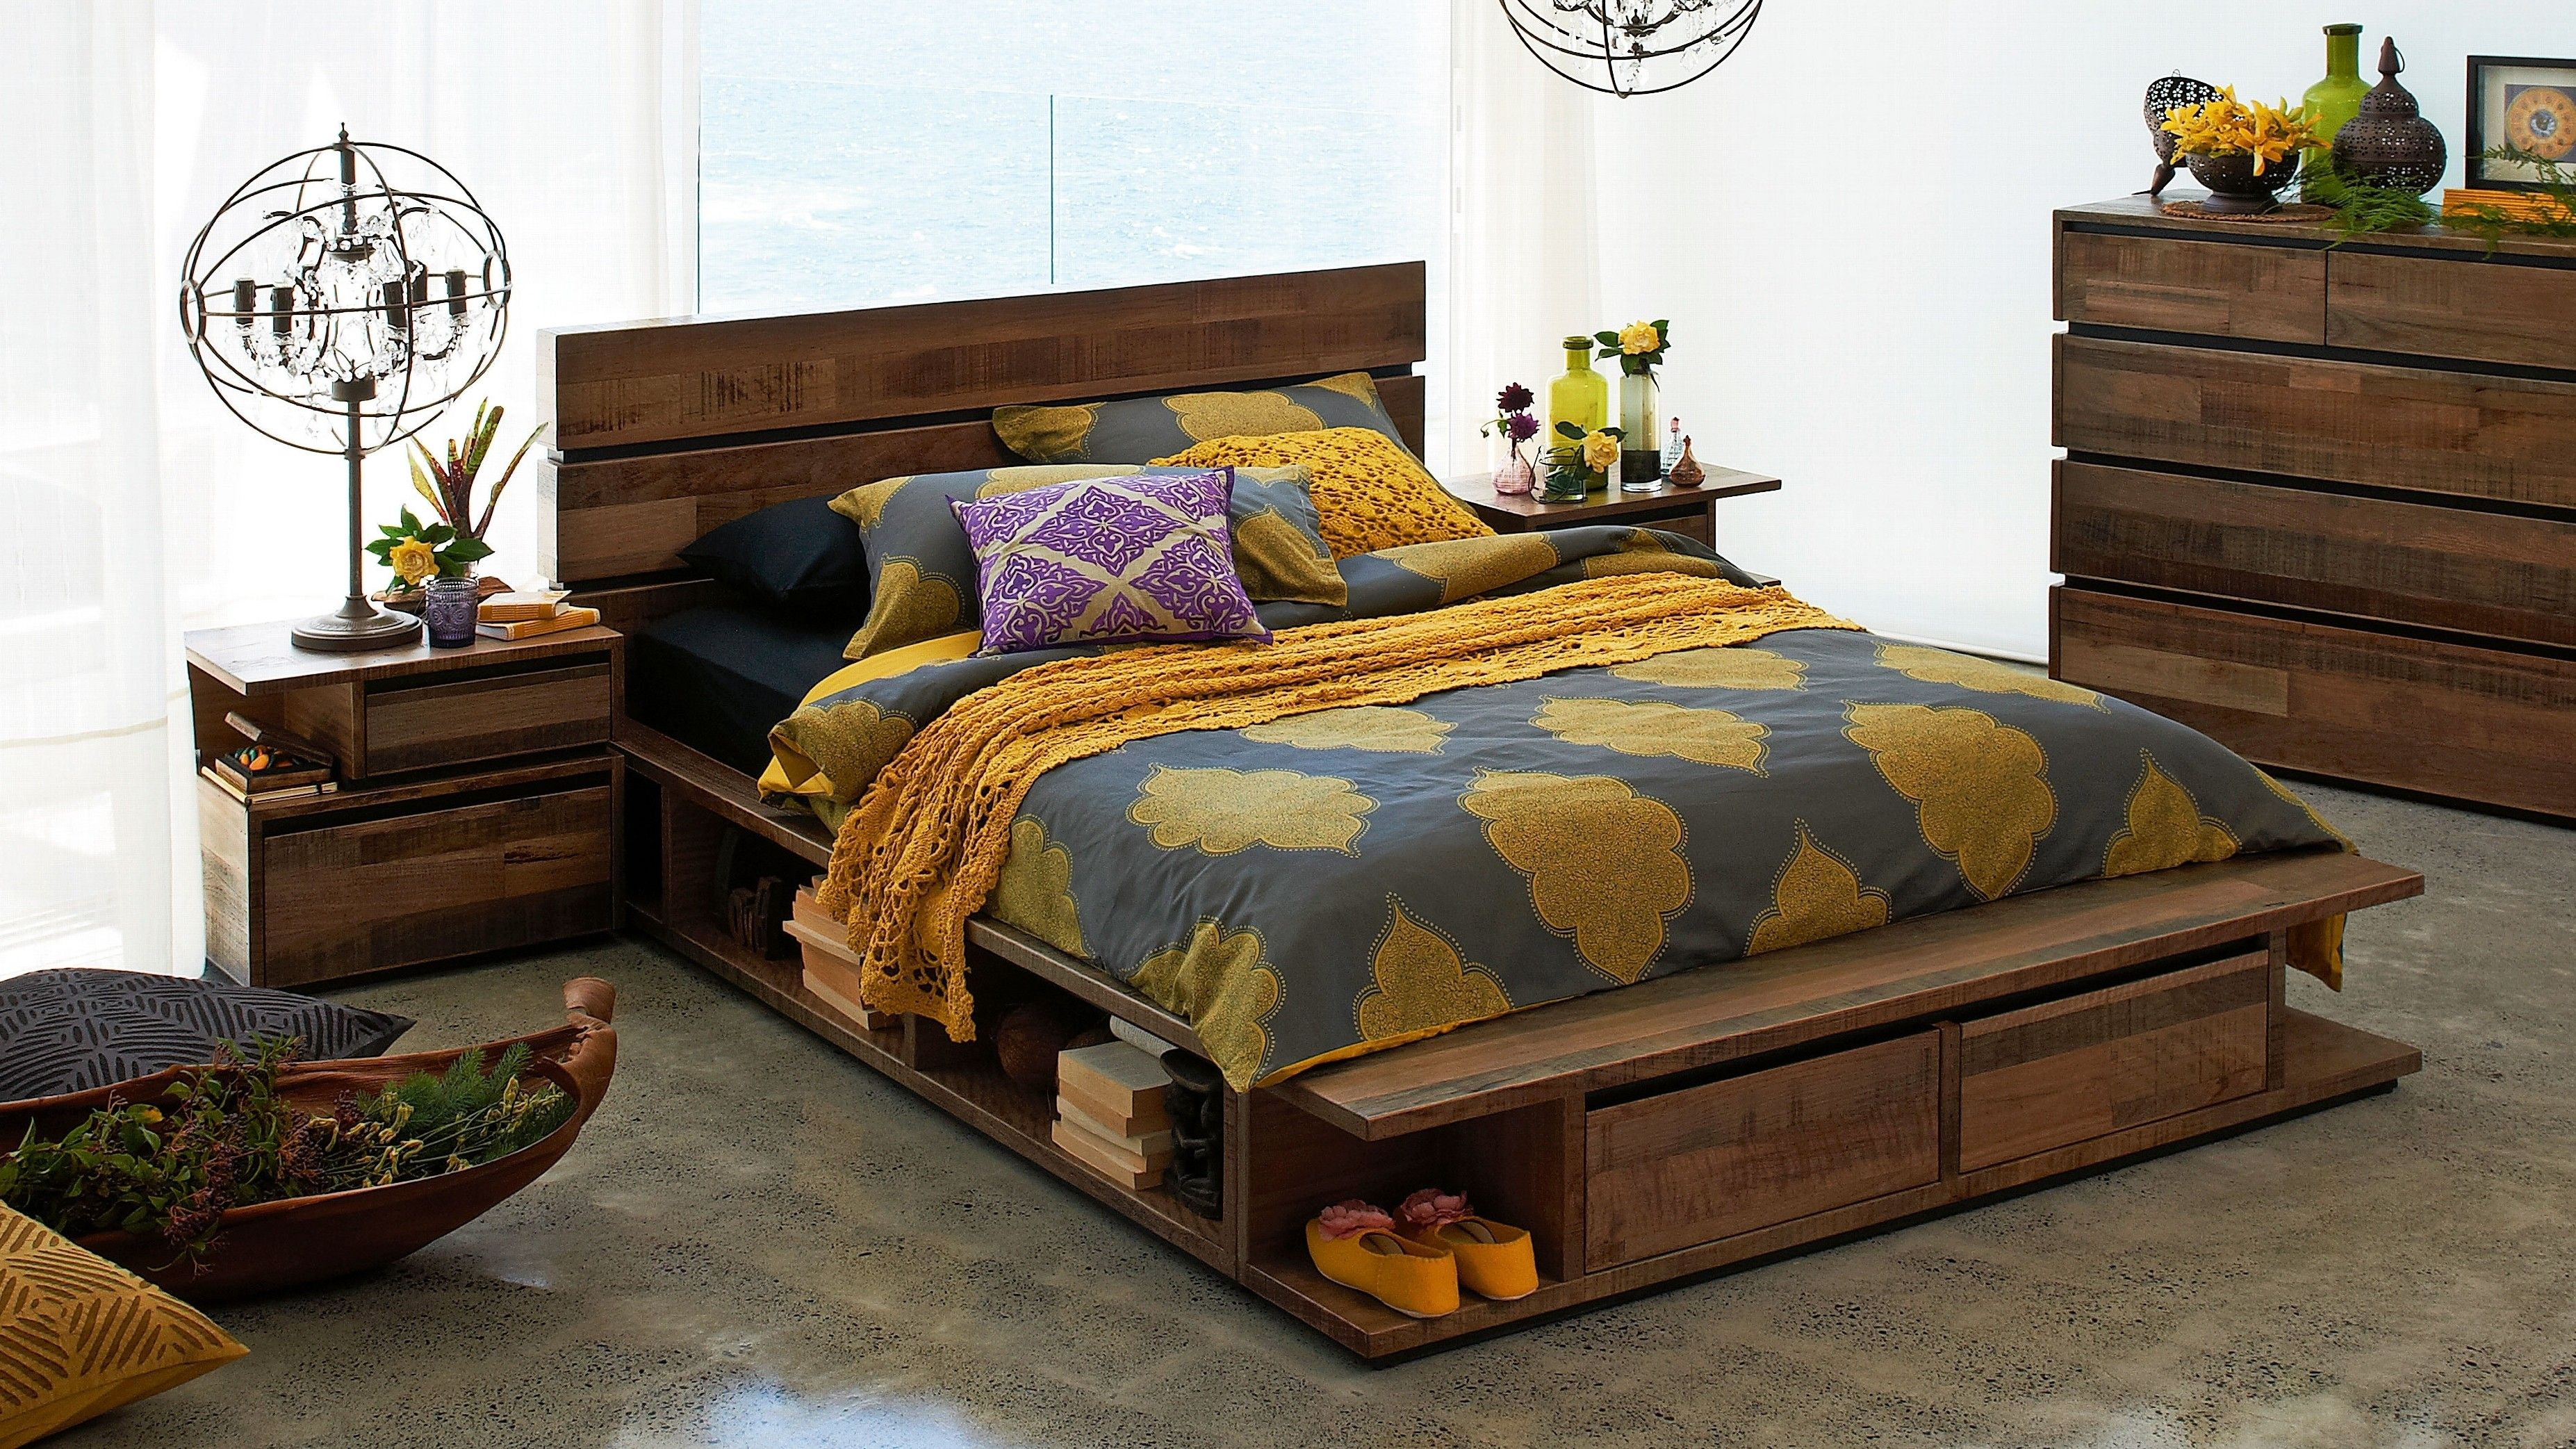 Random Low Queen Bed Furniture Pinterest Queen beds